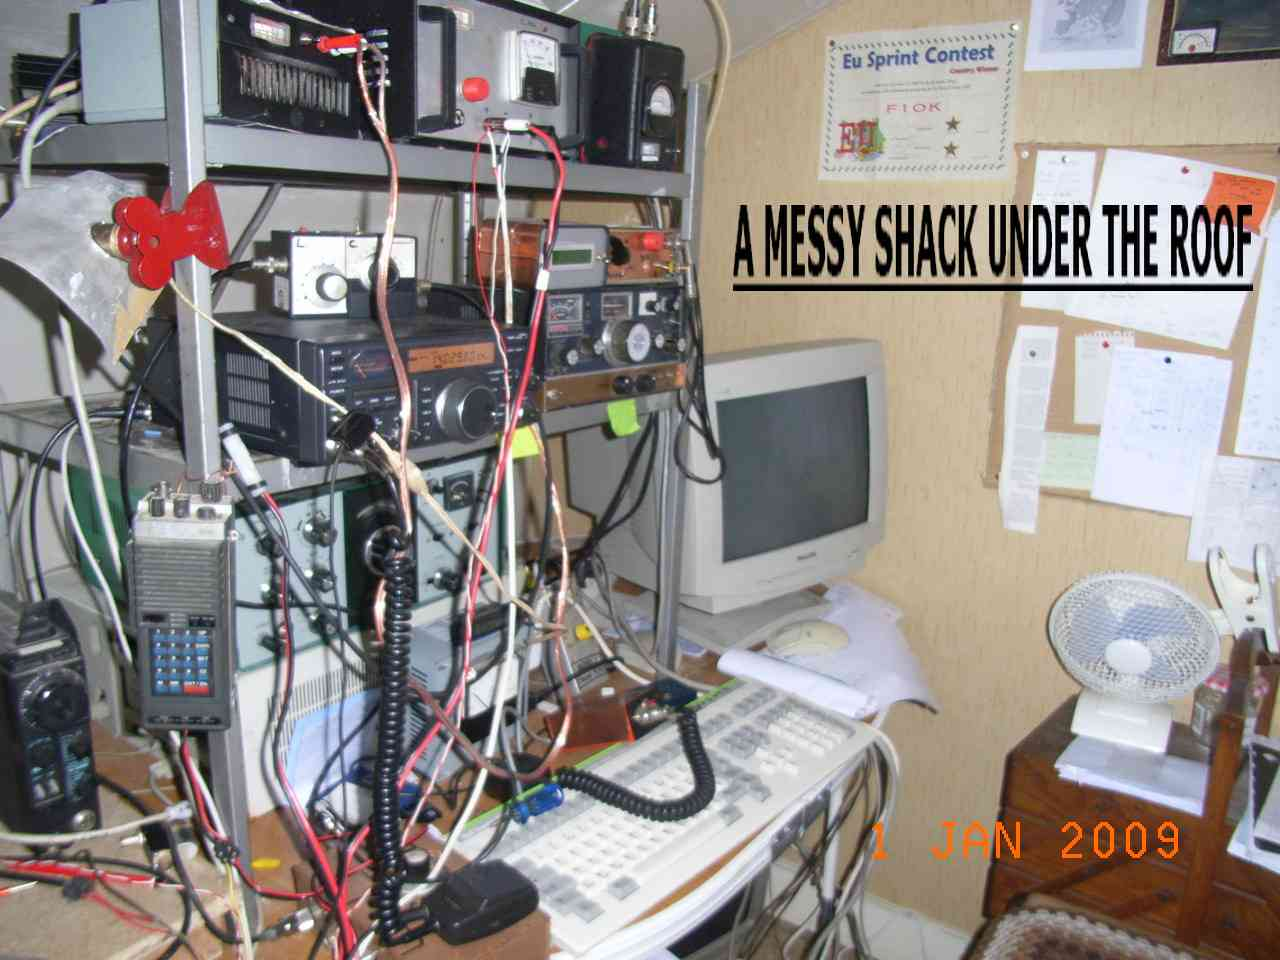 Remote Transceiver Control Ham Shack Wiring Diagrams As It Is Well Known And All The Strings Attached Are Not Considered Very Scenic By Most Of People Especially Spouse Therefore